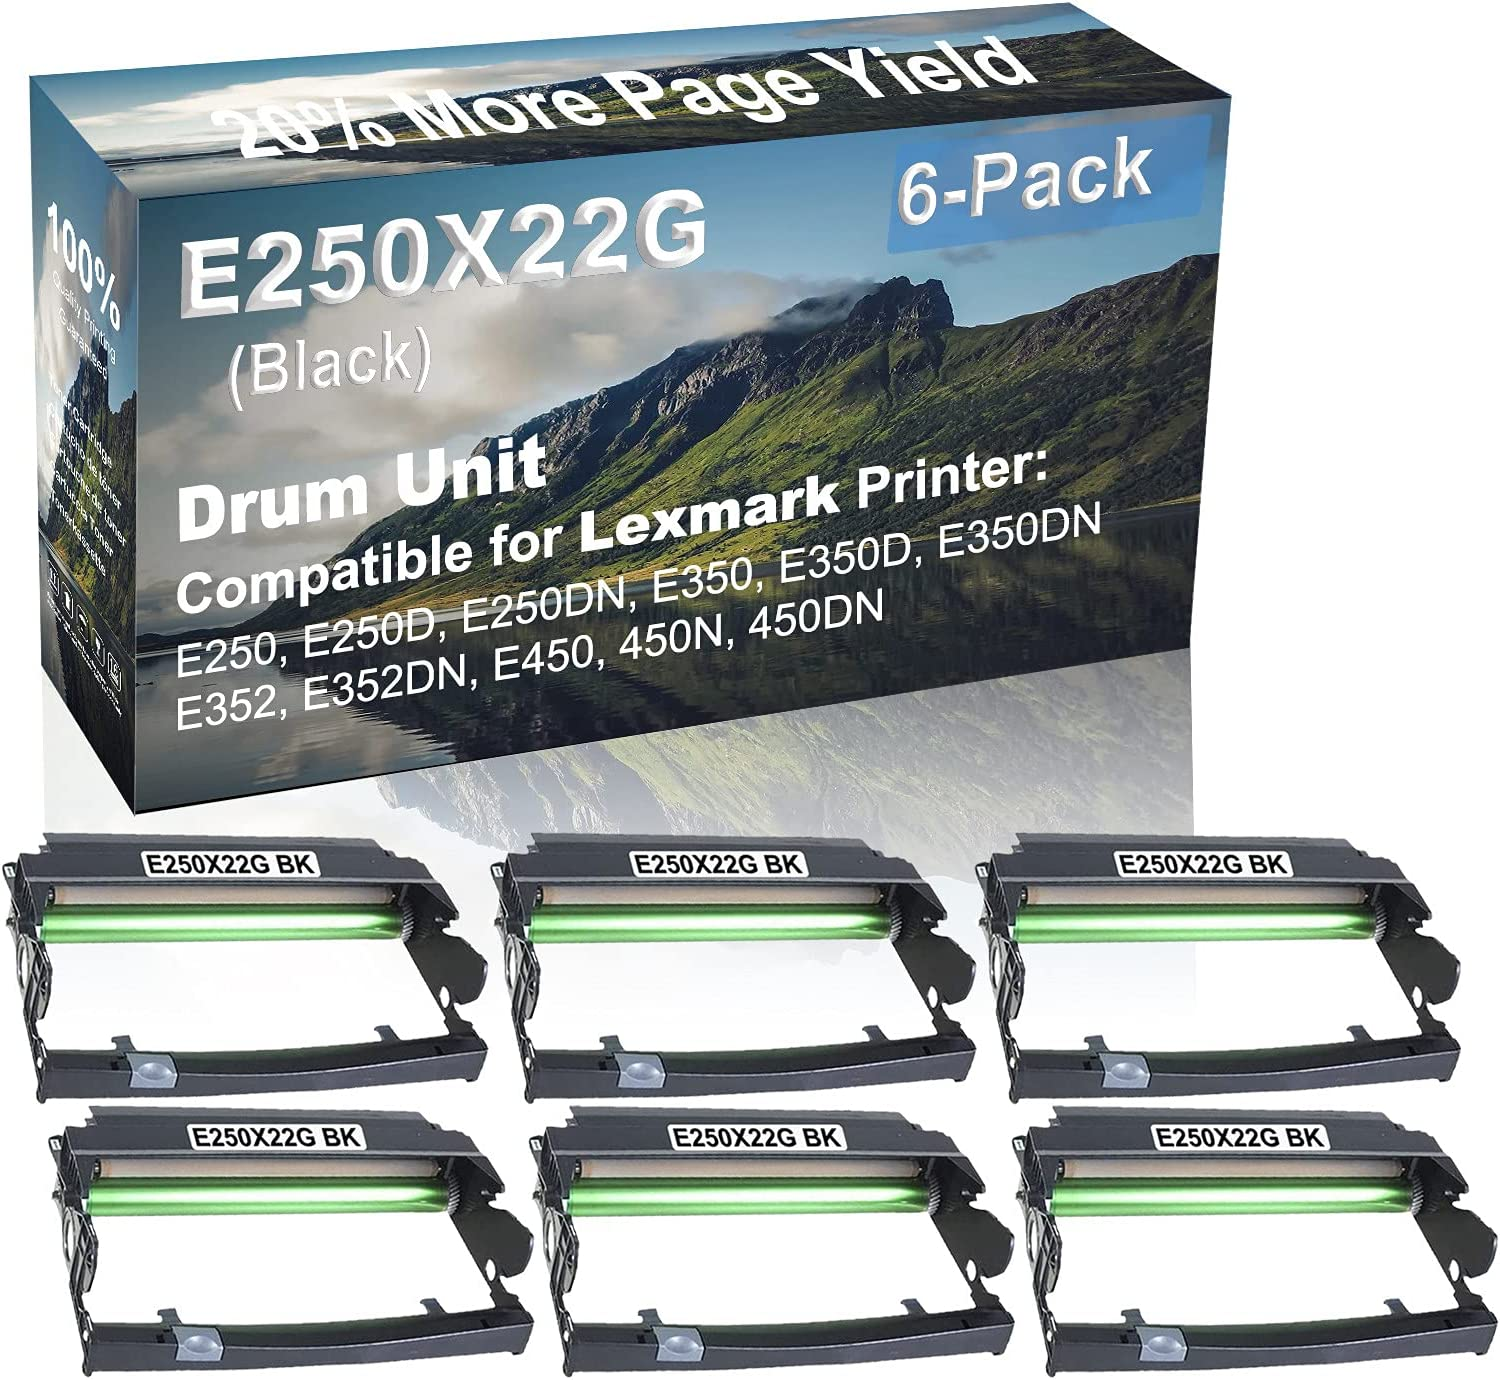 6-Pack Compatible Drum Unit (Black) Replacement for Lexmark E250X22G Drum Kit use for Lexmark E352DN, E450, 450N, 450DN Printer